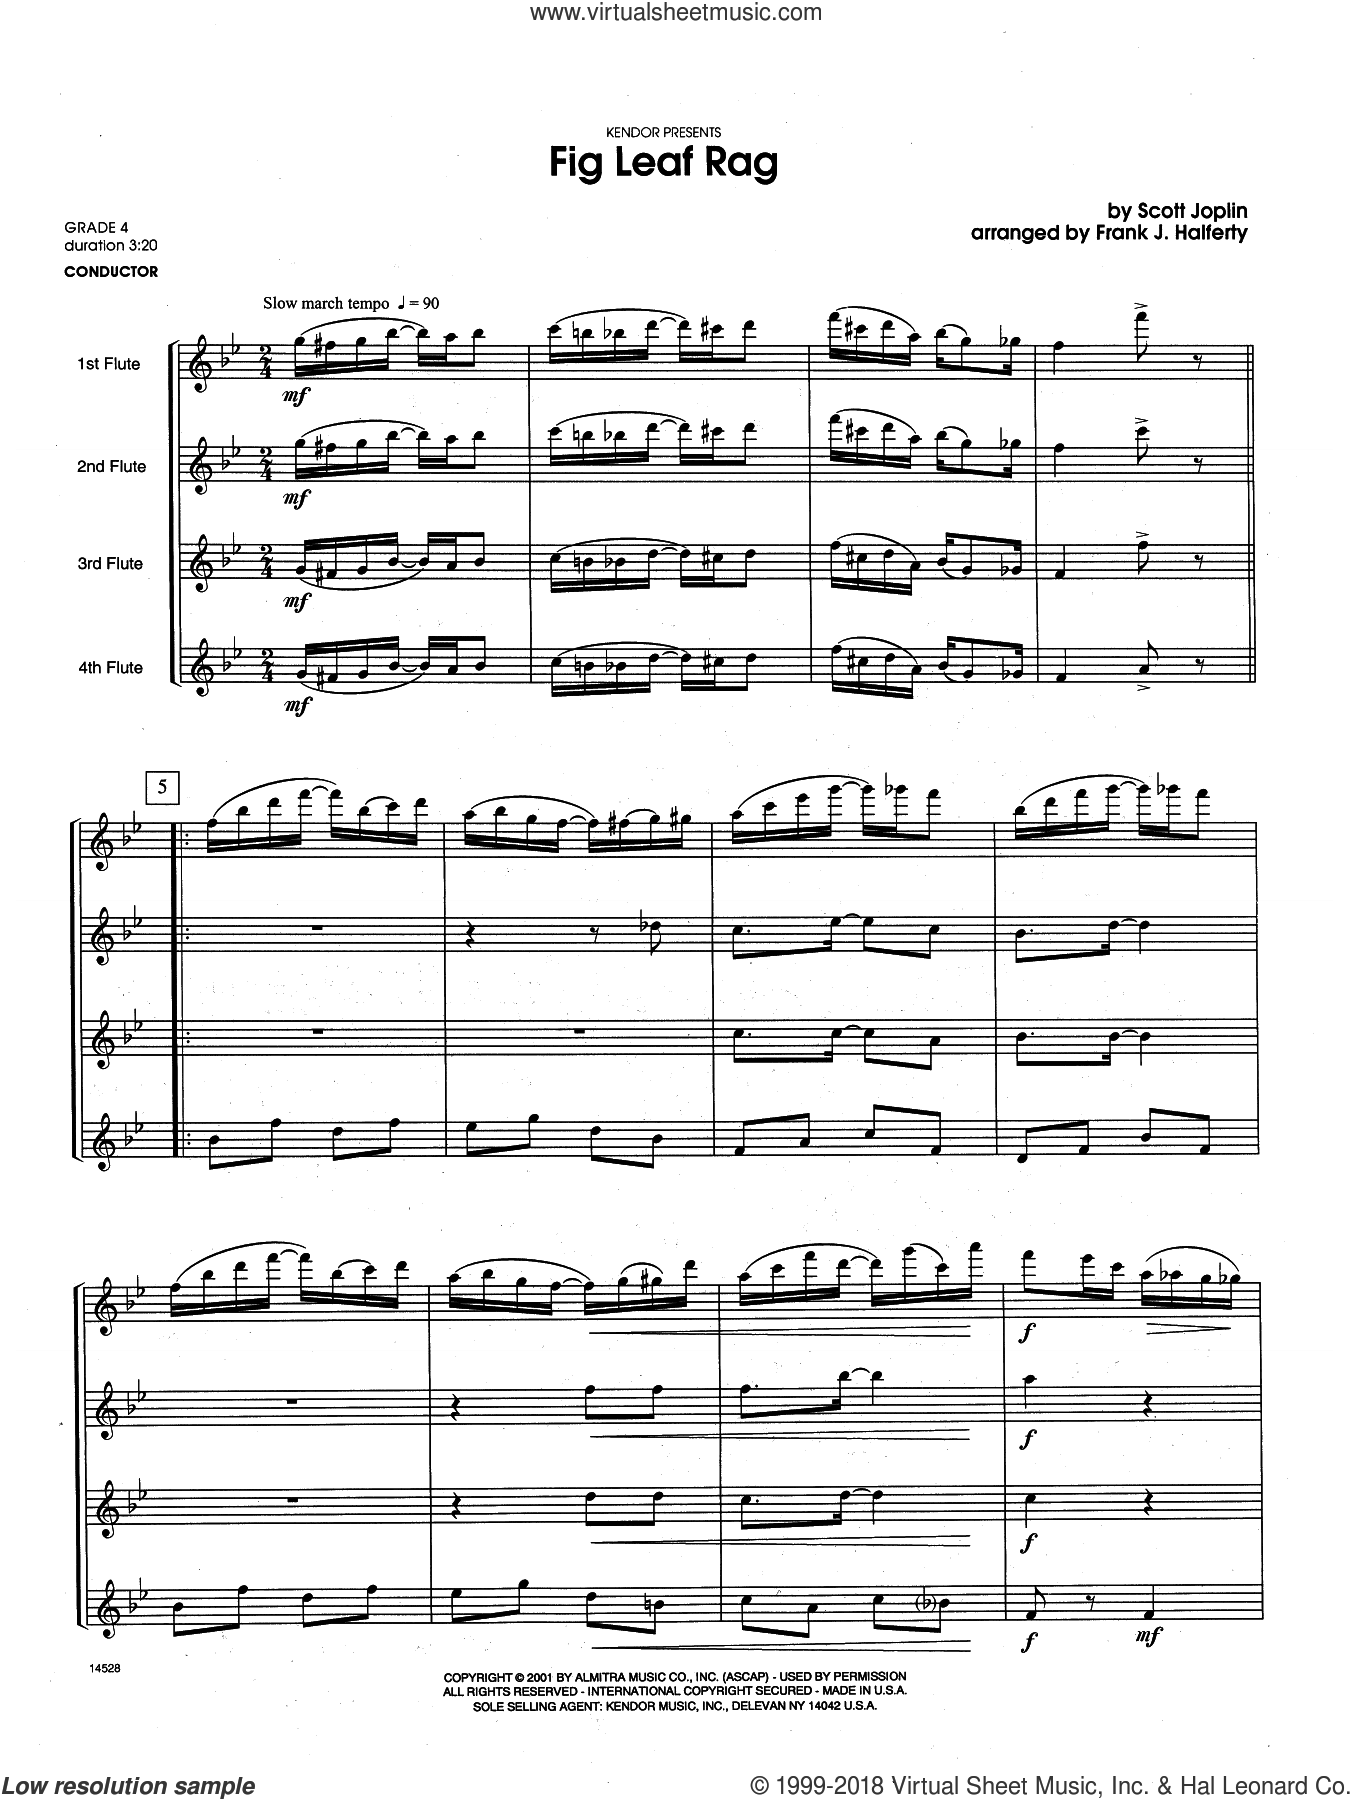 Fig Leaf Rag (COMPLETE) sheet music for flute quartet by Scott Joplin and Frank J. Halferty, intermediate